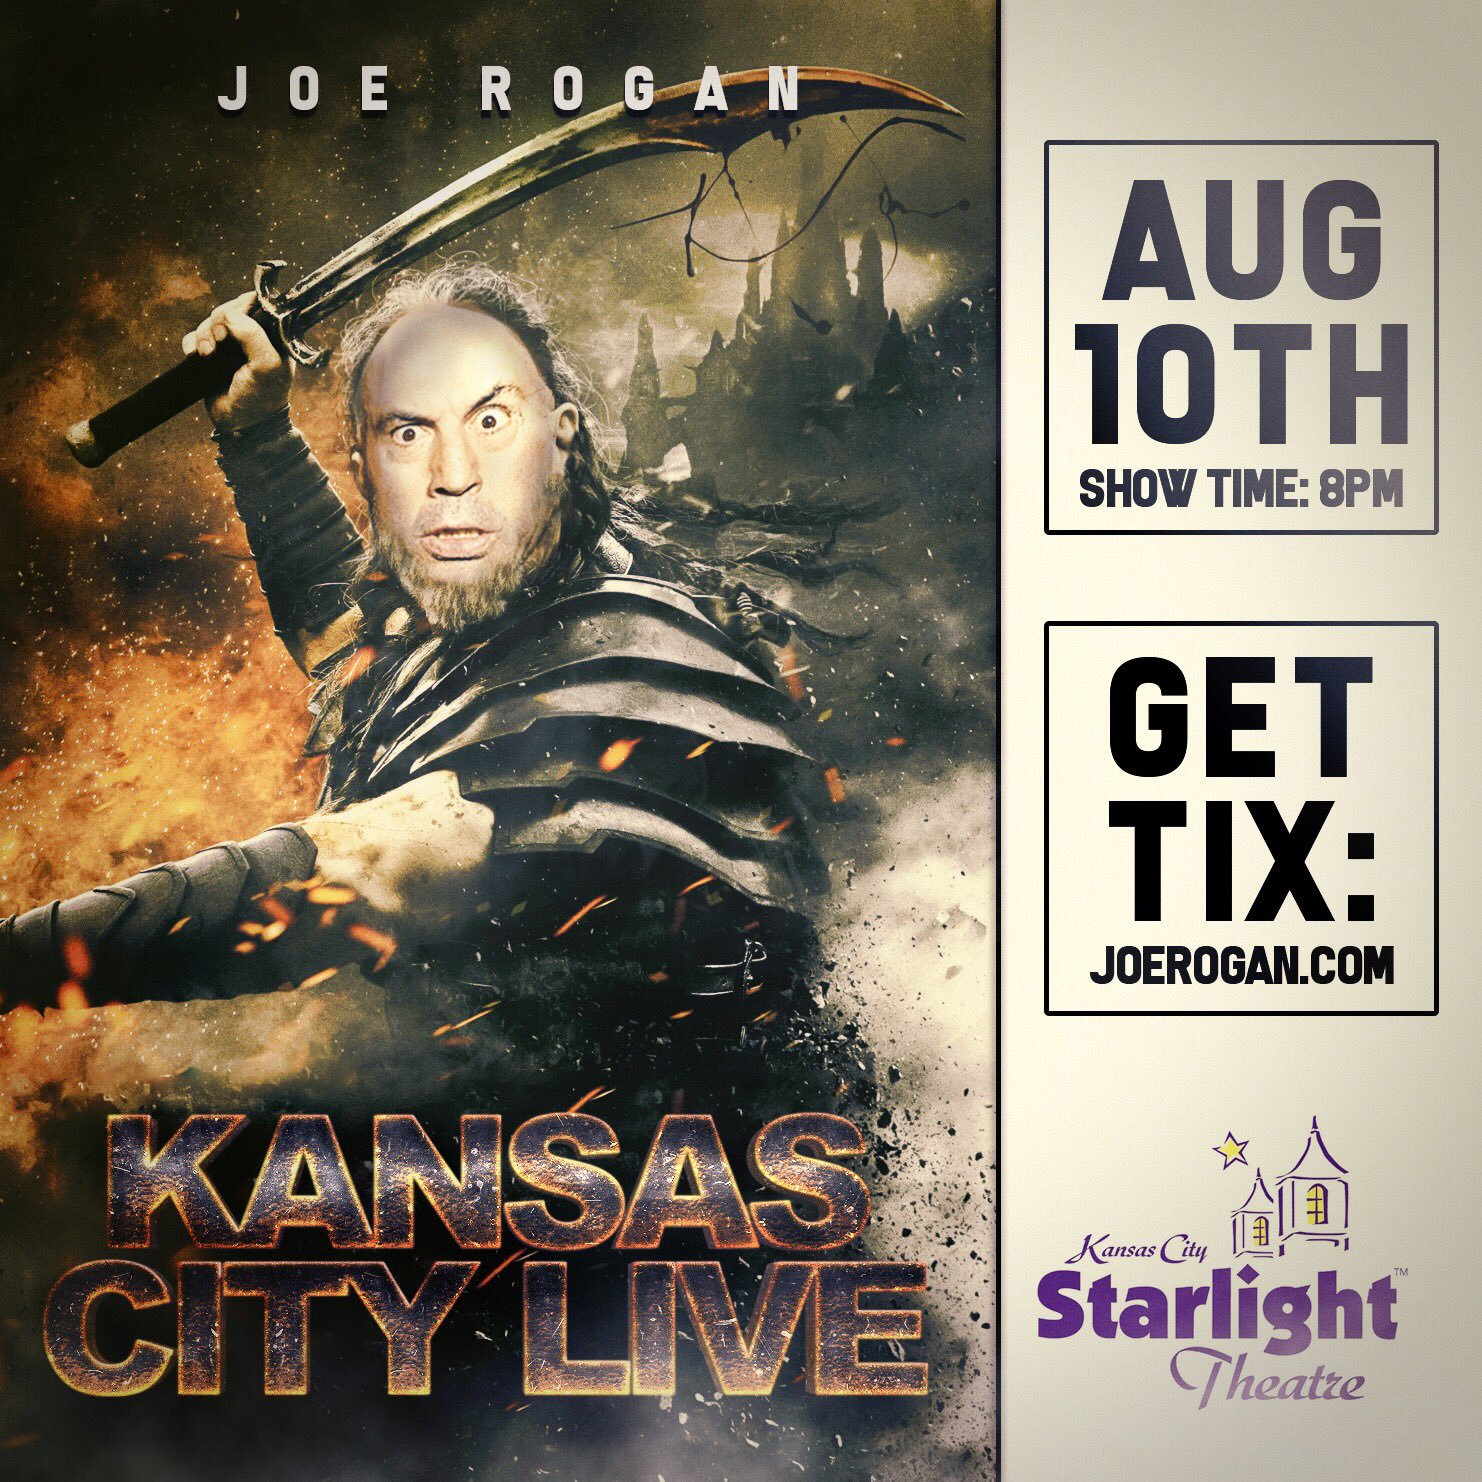 Kansas City! I return to your fine town August 10th for the first time in years. I'm pumped! https://t.co/QaS20jiVOG https://t.co/4R3DSFBDHJ